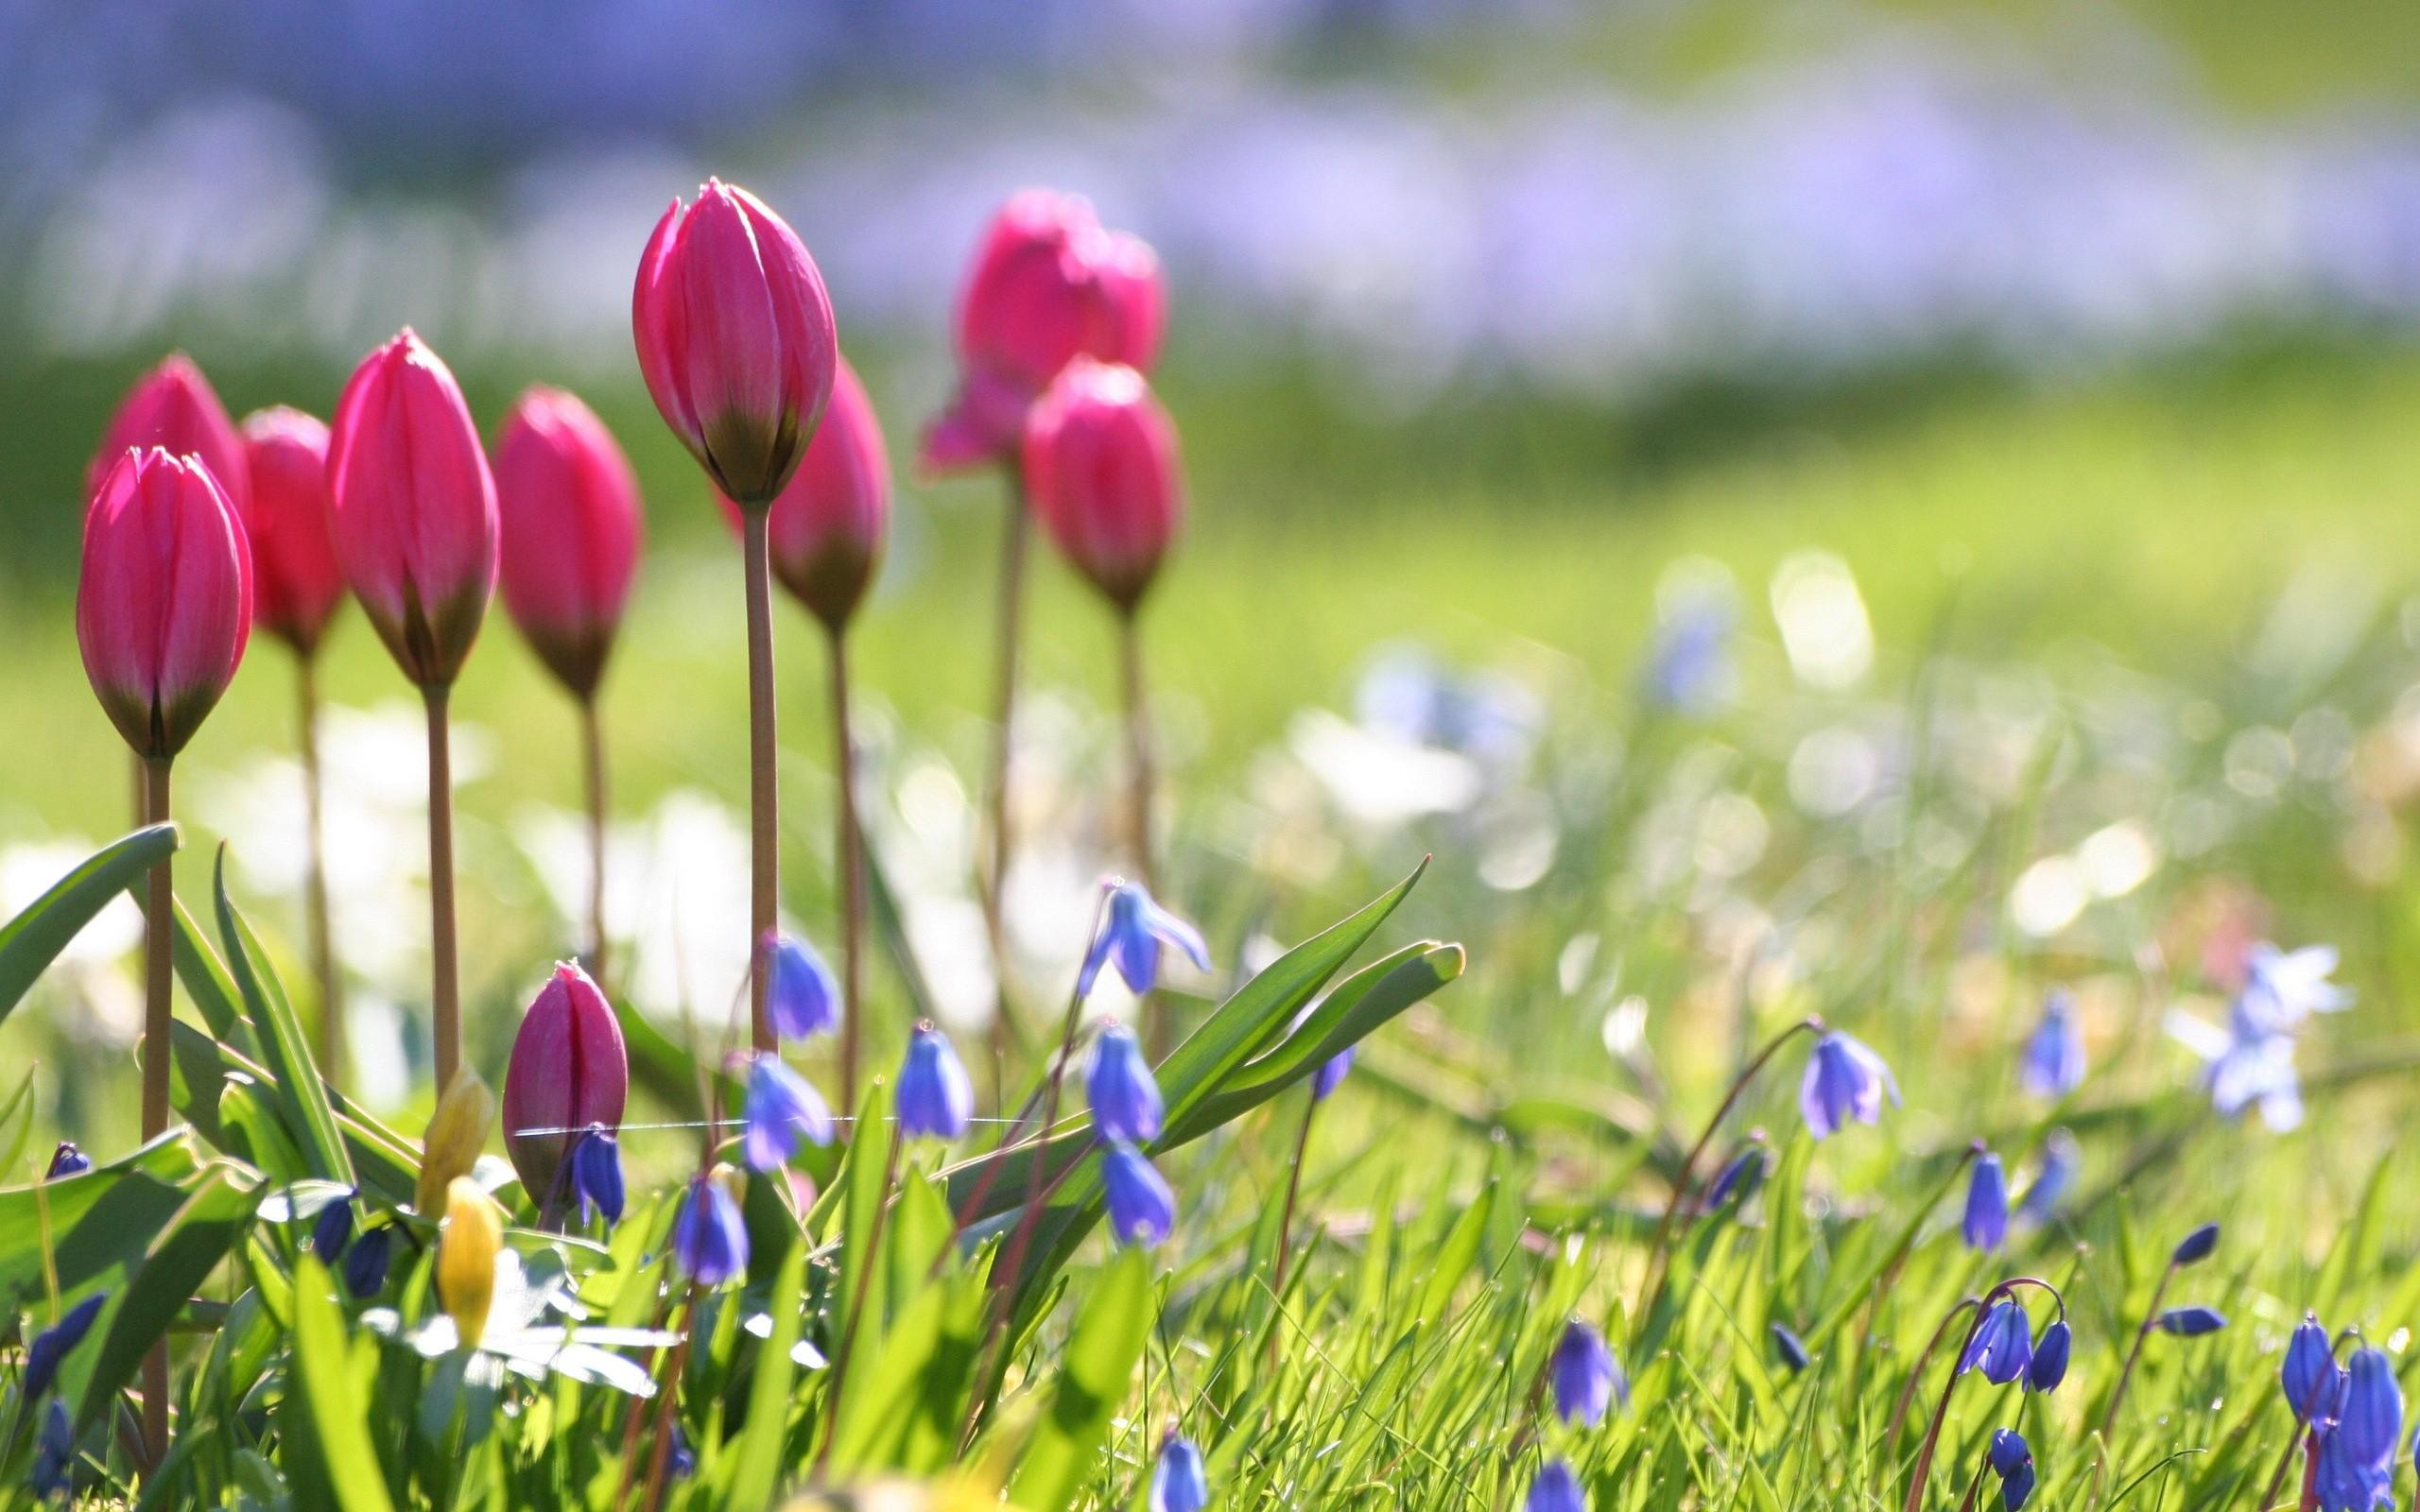 Spring flower wallpaper backgrounds stunning flower wallpapers mightylinksfo